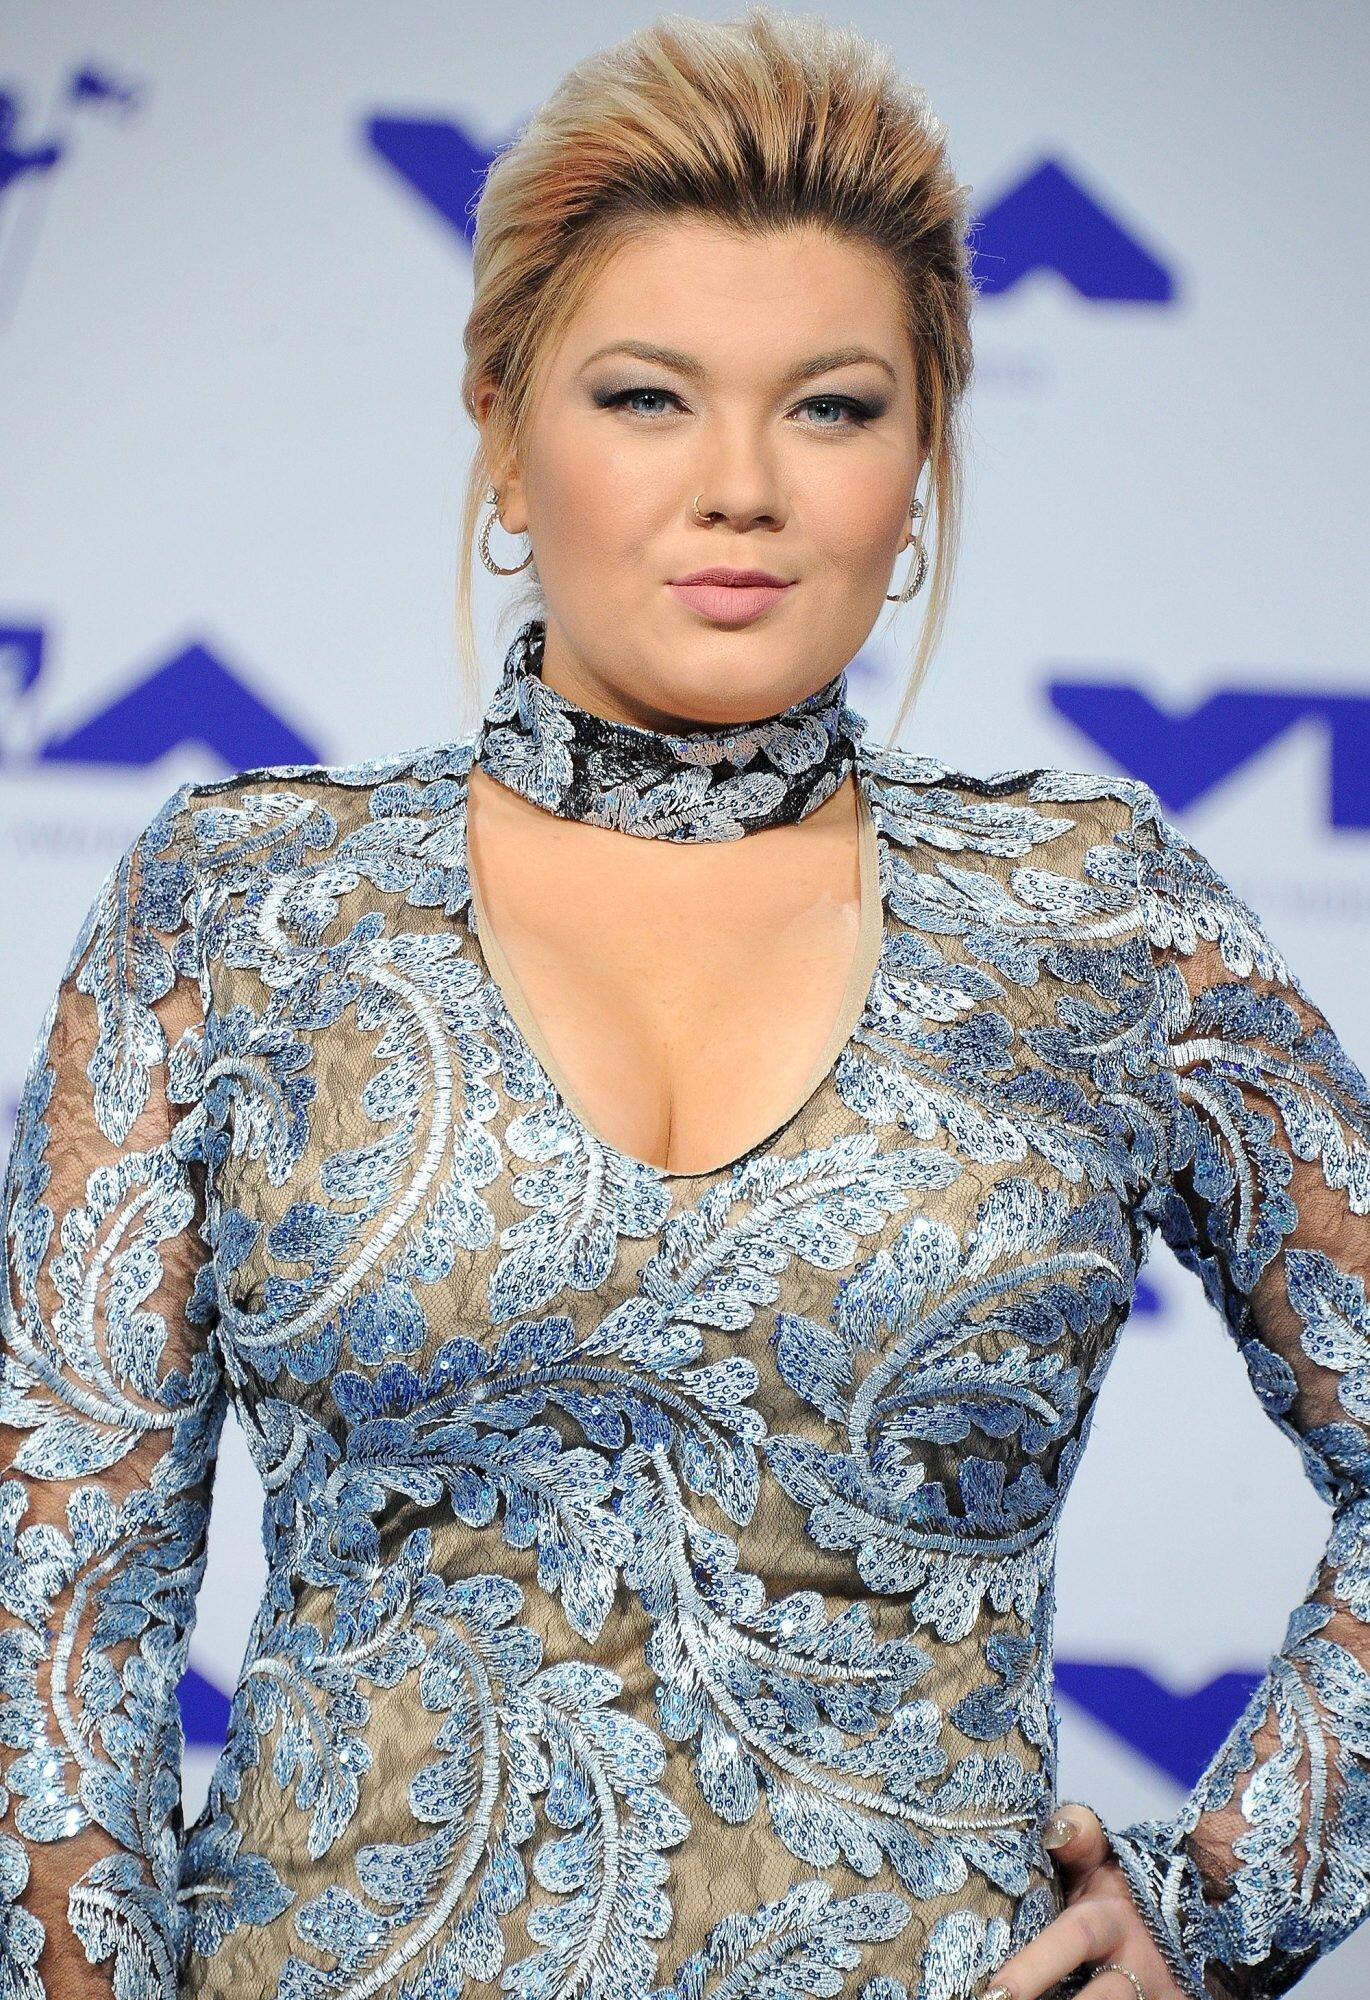 Teen Mom OG 's Amber Portwood Accepted to Purdue University, Plans to Pursue Psychology Degree